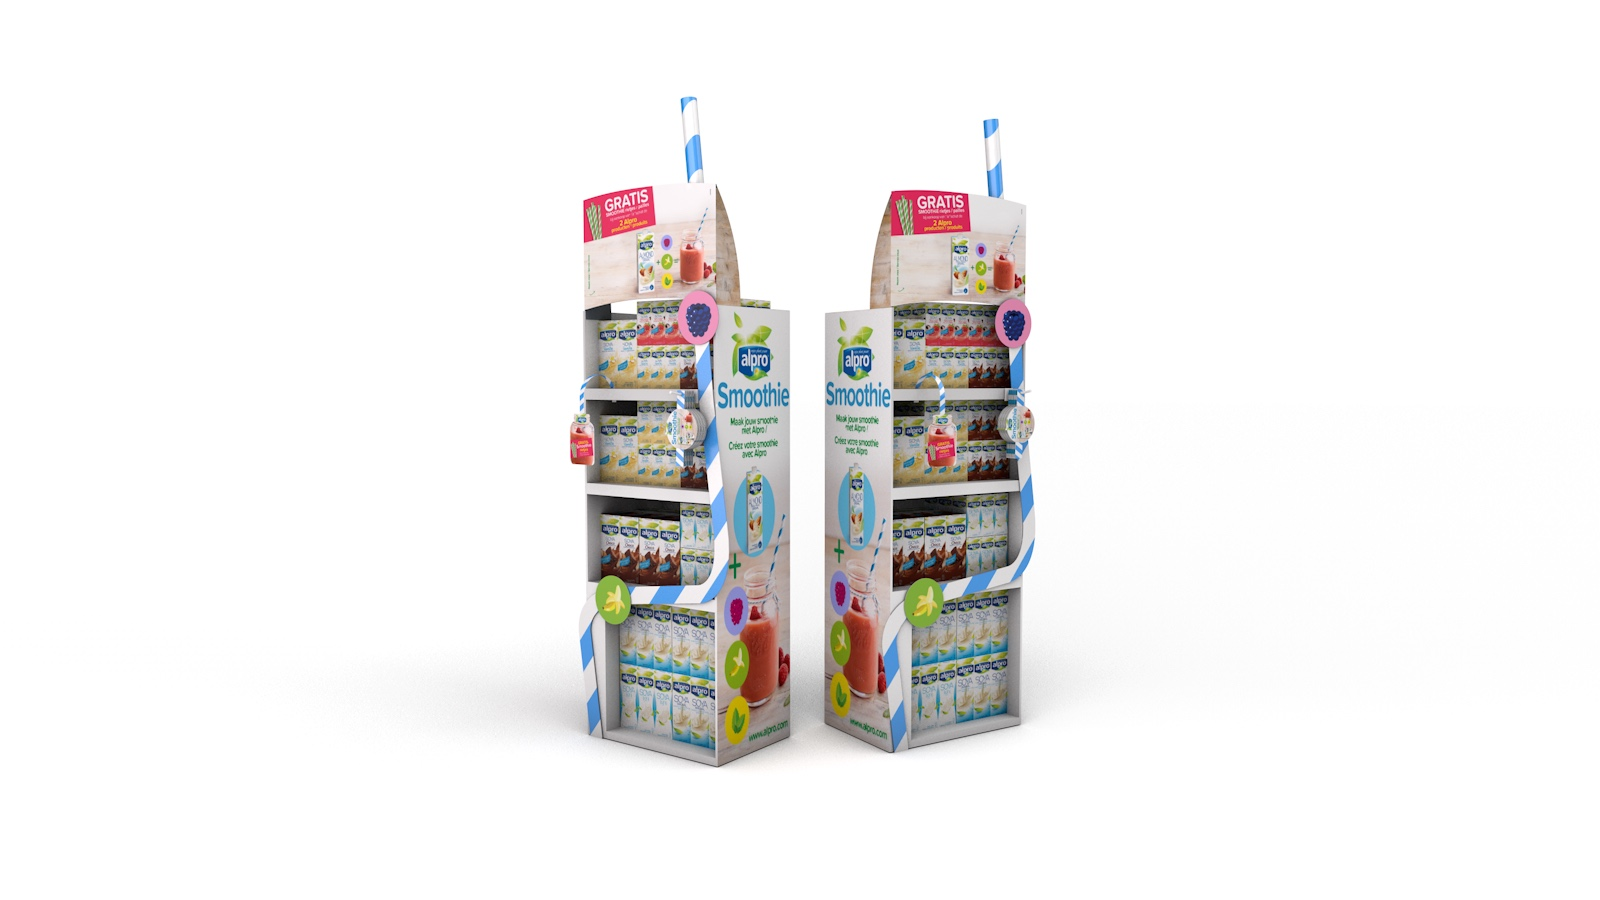 Alpro FINAL SETTING_DISPLAY01.jpeg